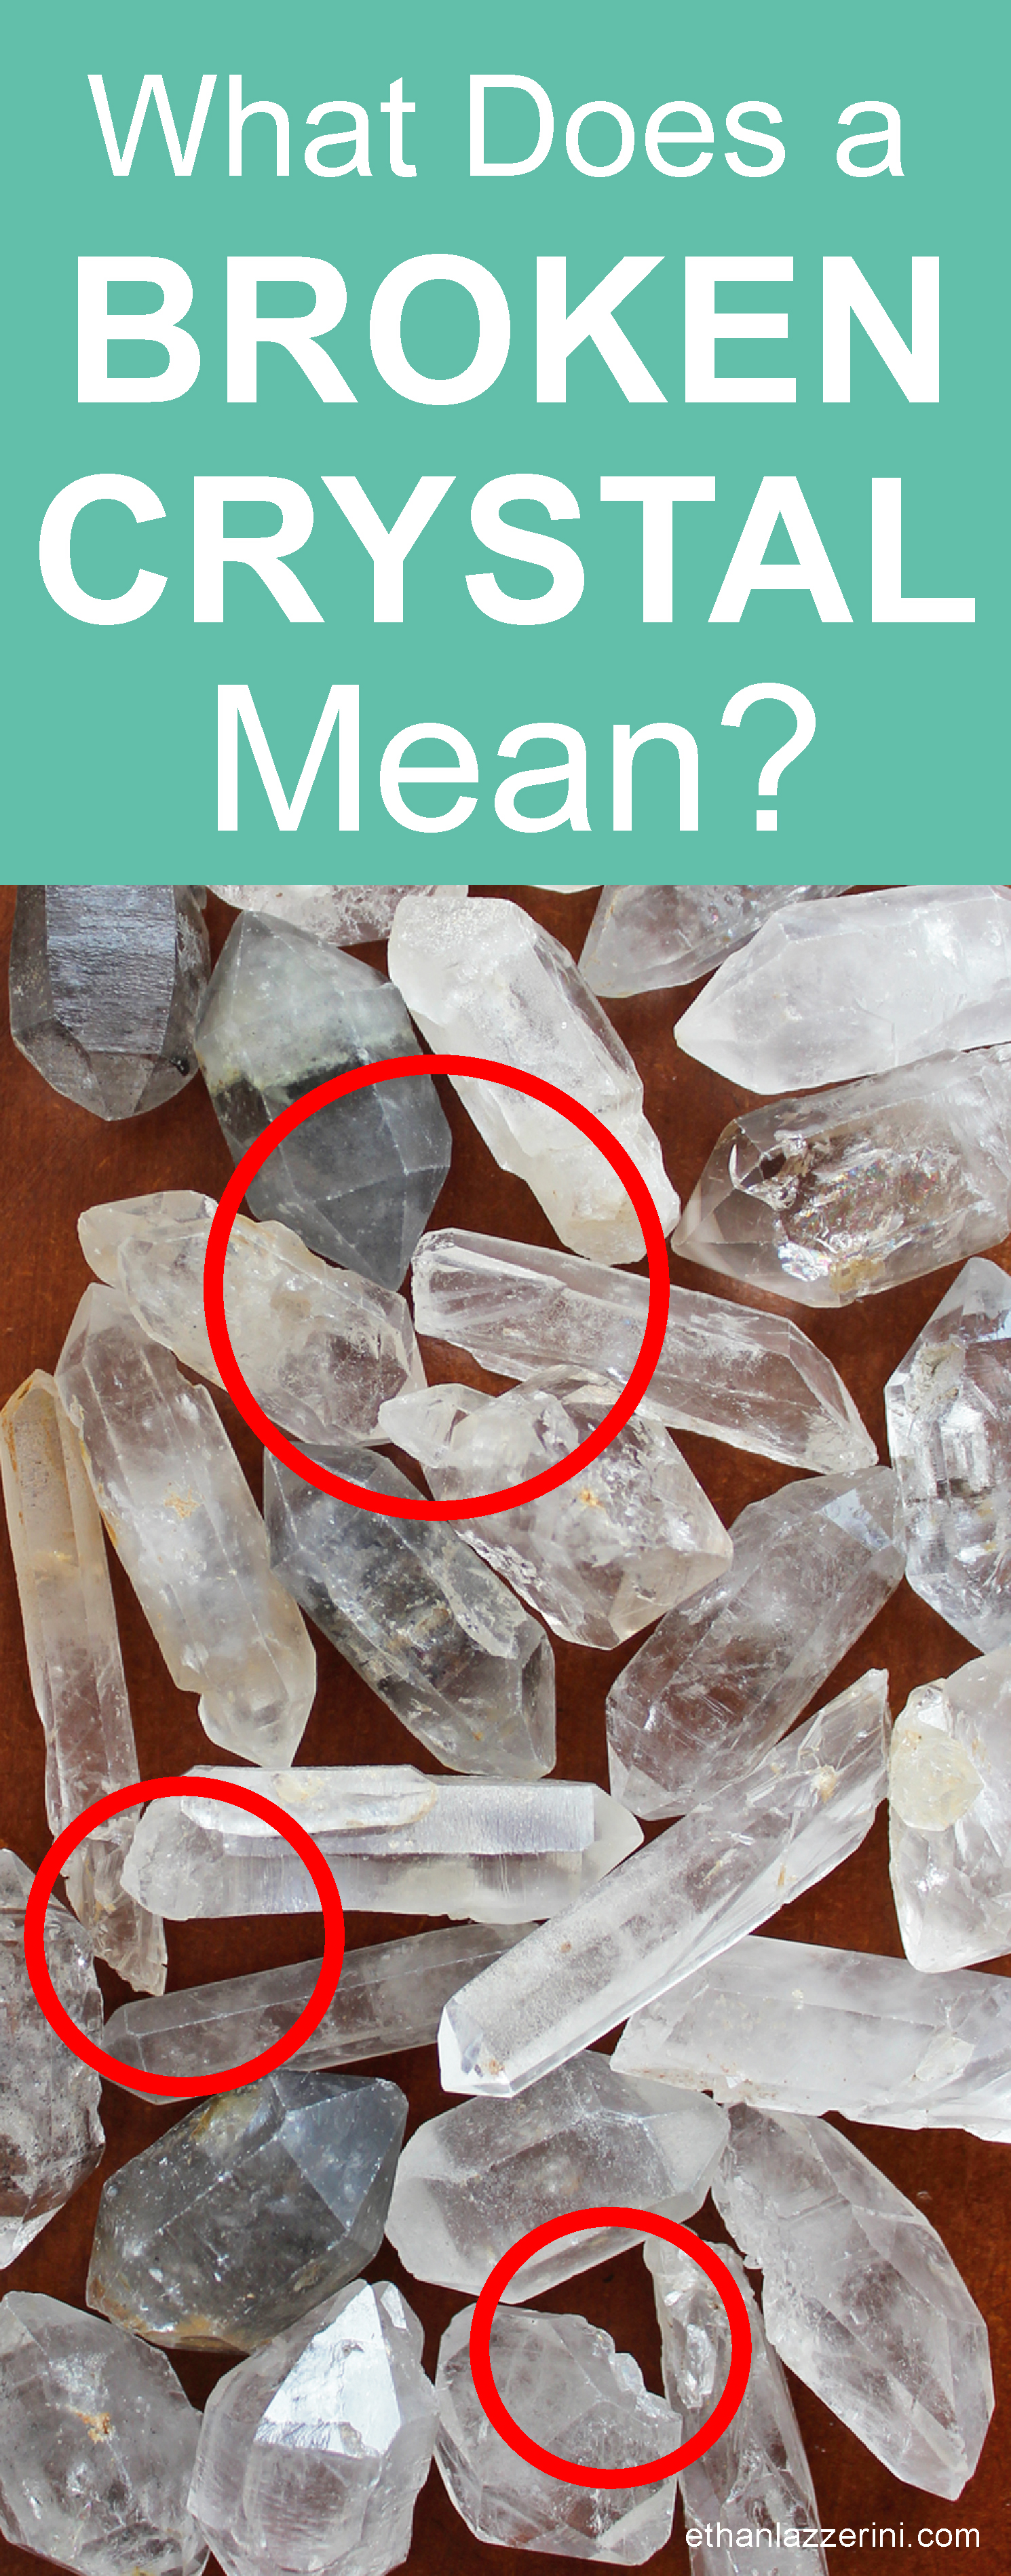 What does a broken crystal mean?